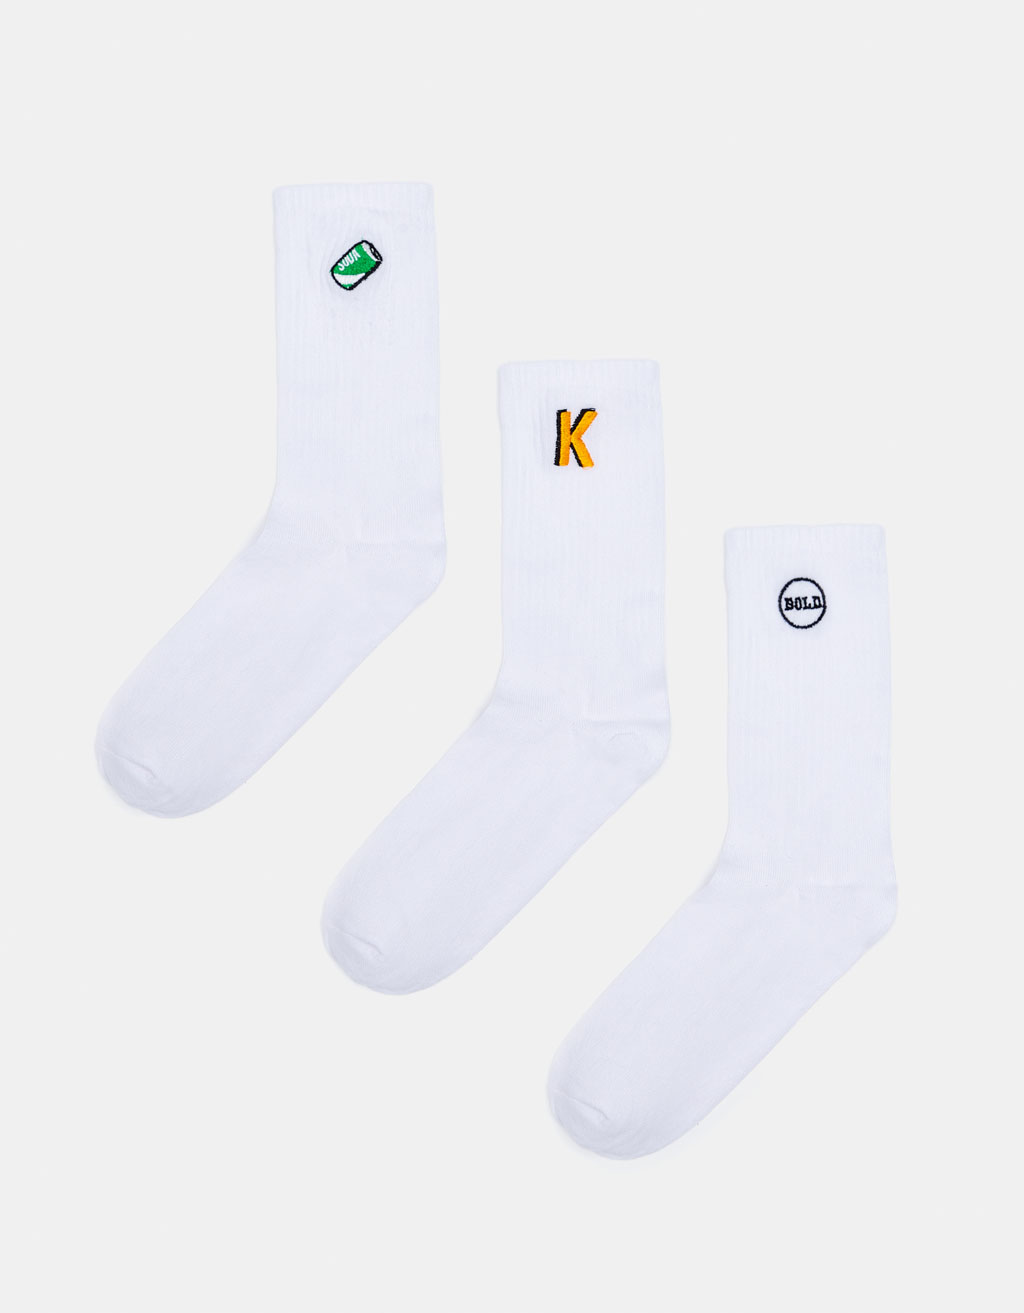 Pack of 3 pairs of socks with embroidery